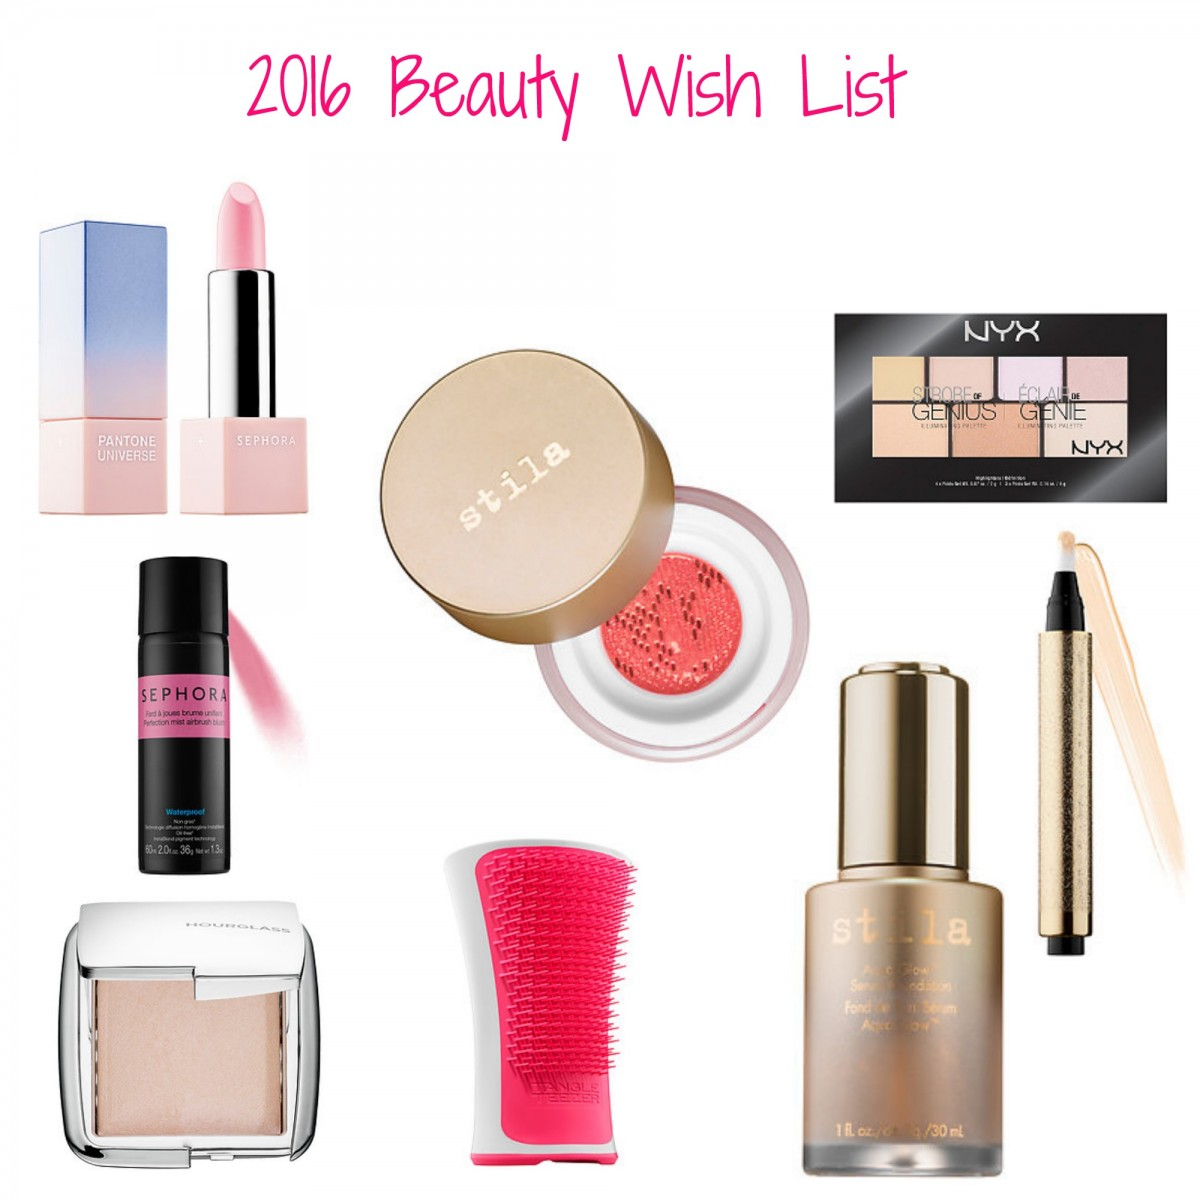 2016 Beauty Wish List